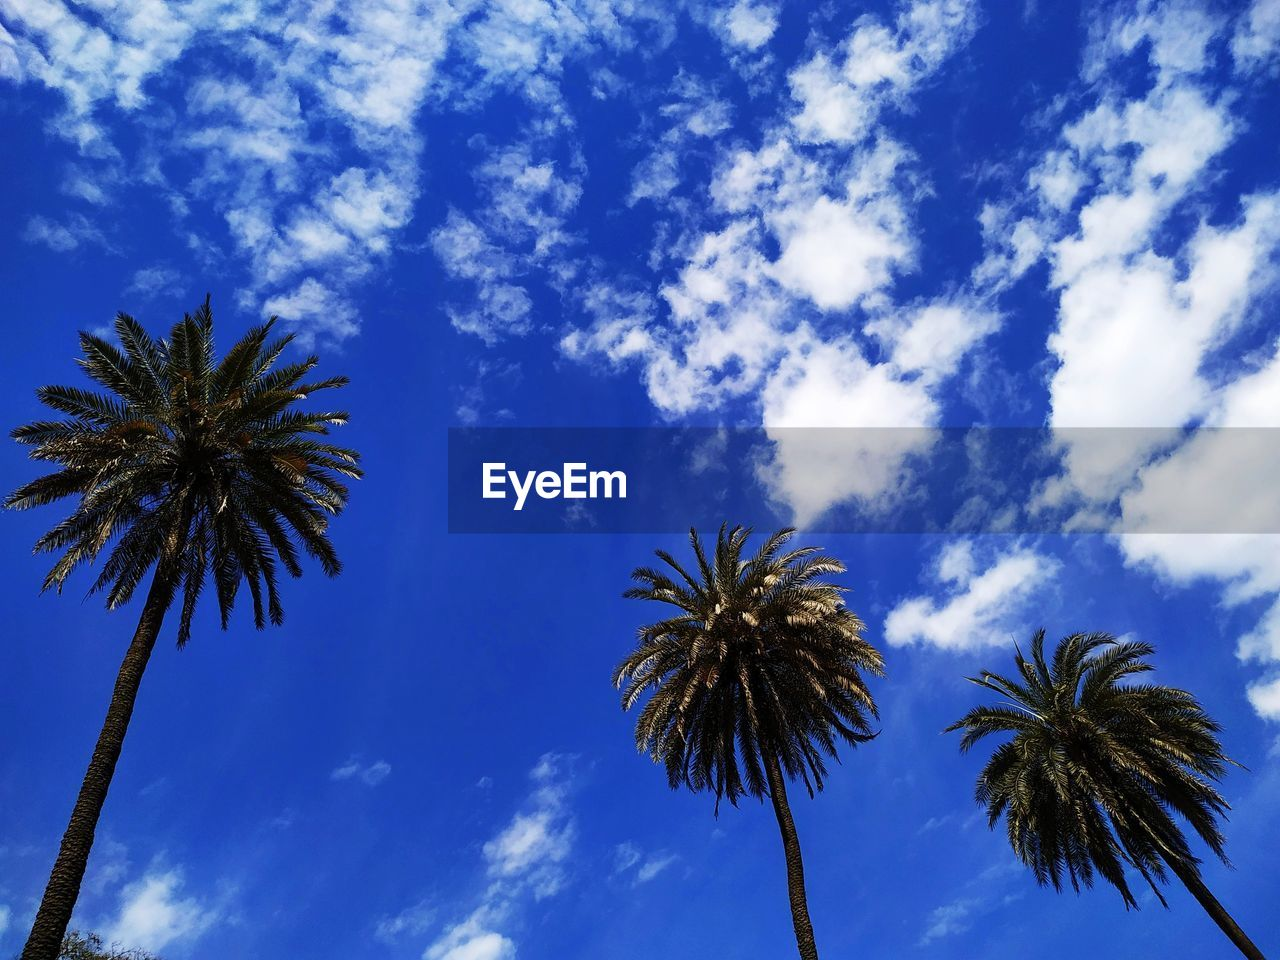 sky, low angle view, palm tree, tree, cloud - sky, tropical climate, plant, beauty in nature, growth, blue, no people, nature, tranquility, outdoors, day, tall - high, scenics - nature, tree trunk, tranquil scene, coconut palm tree, palm leaf, spiky